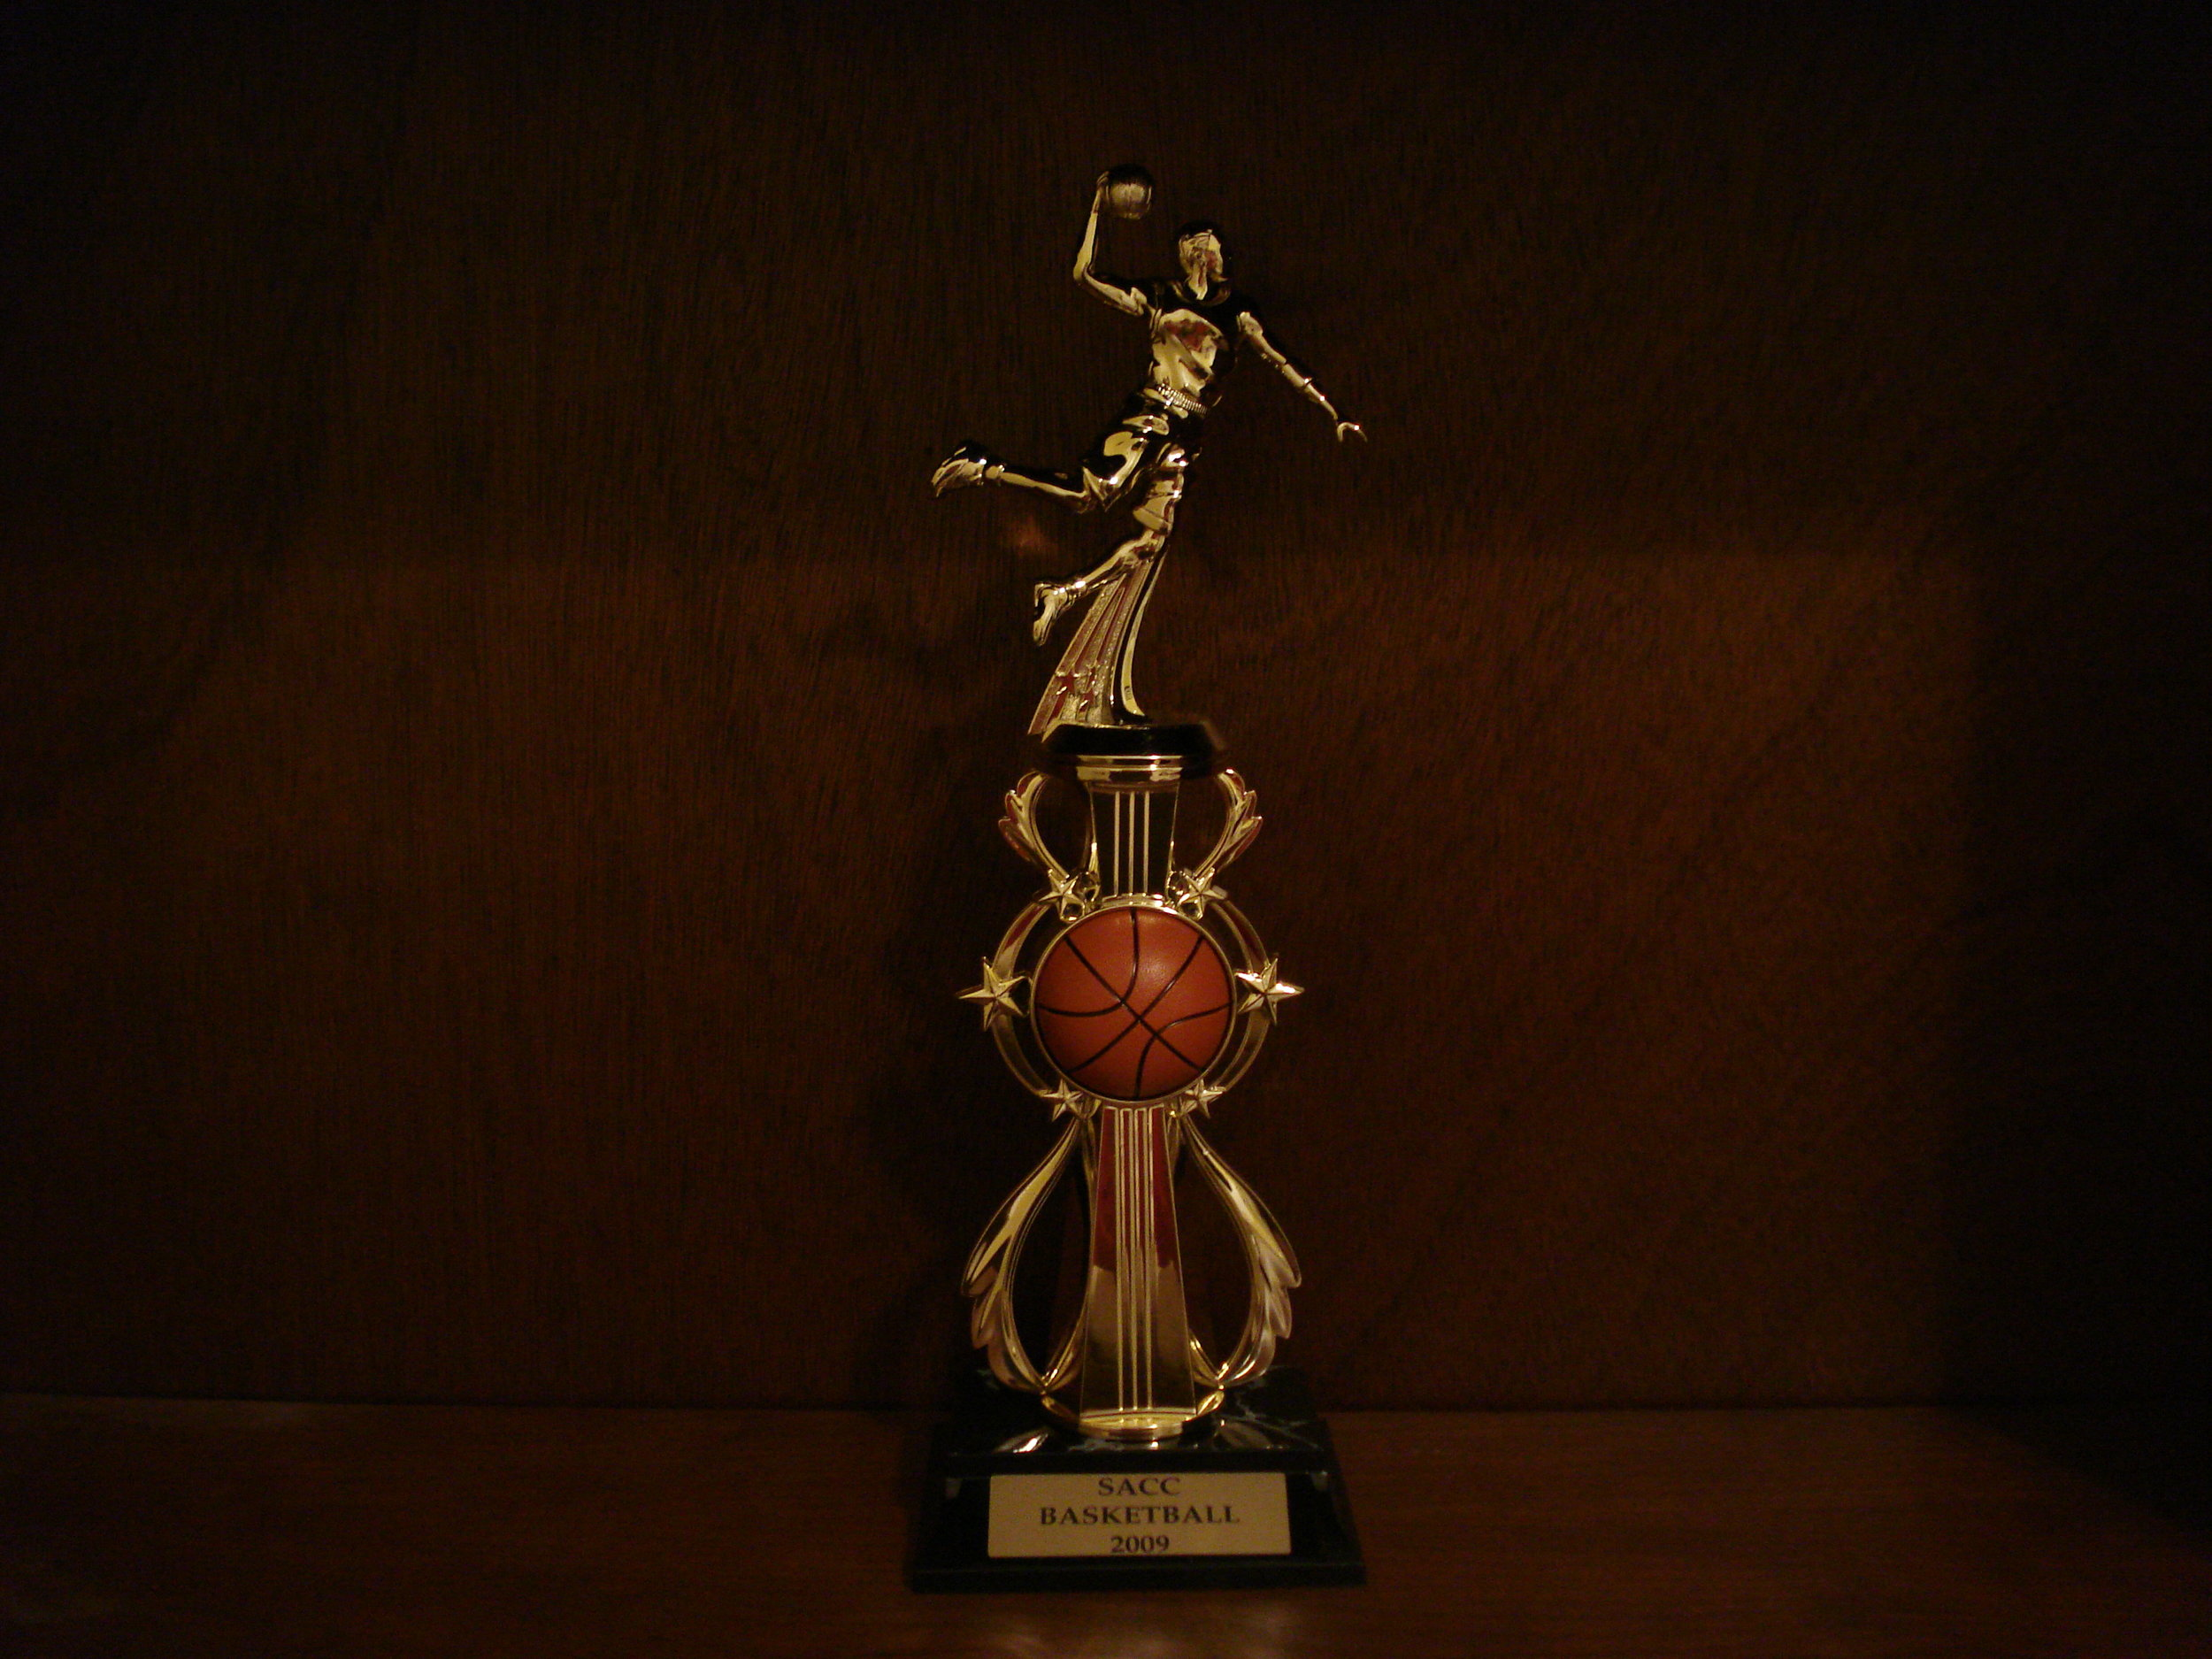 Jon Alex's basketball trophy